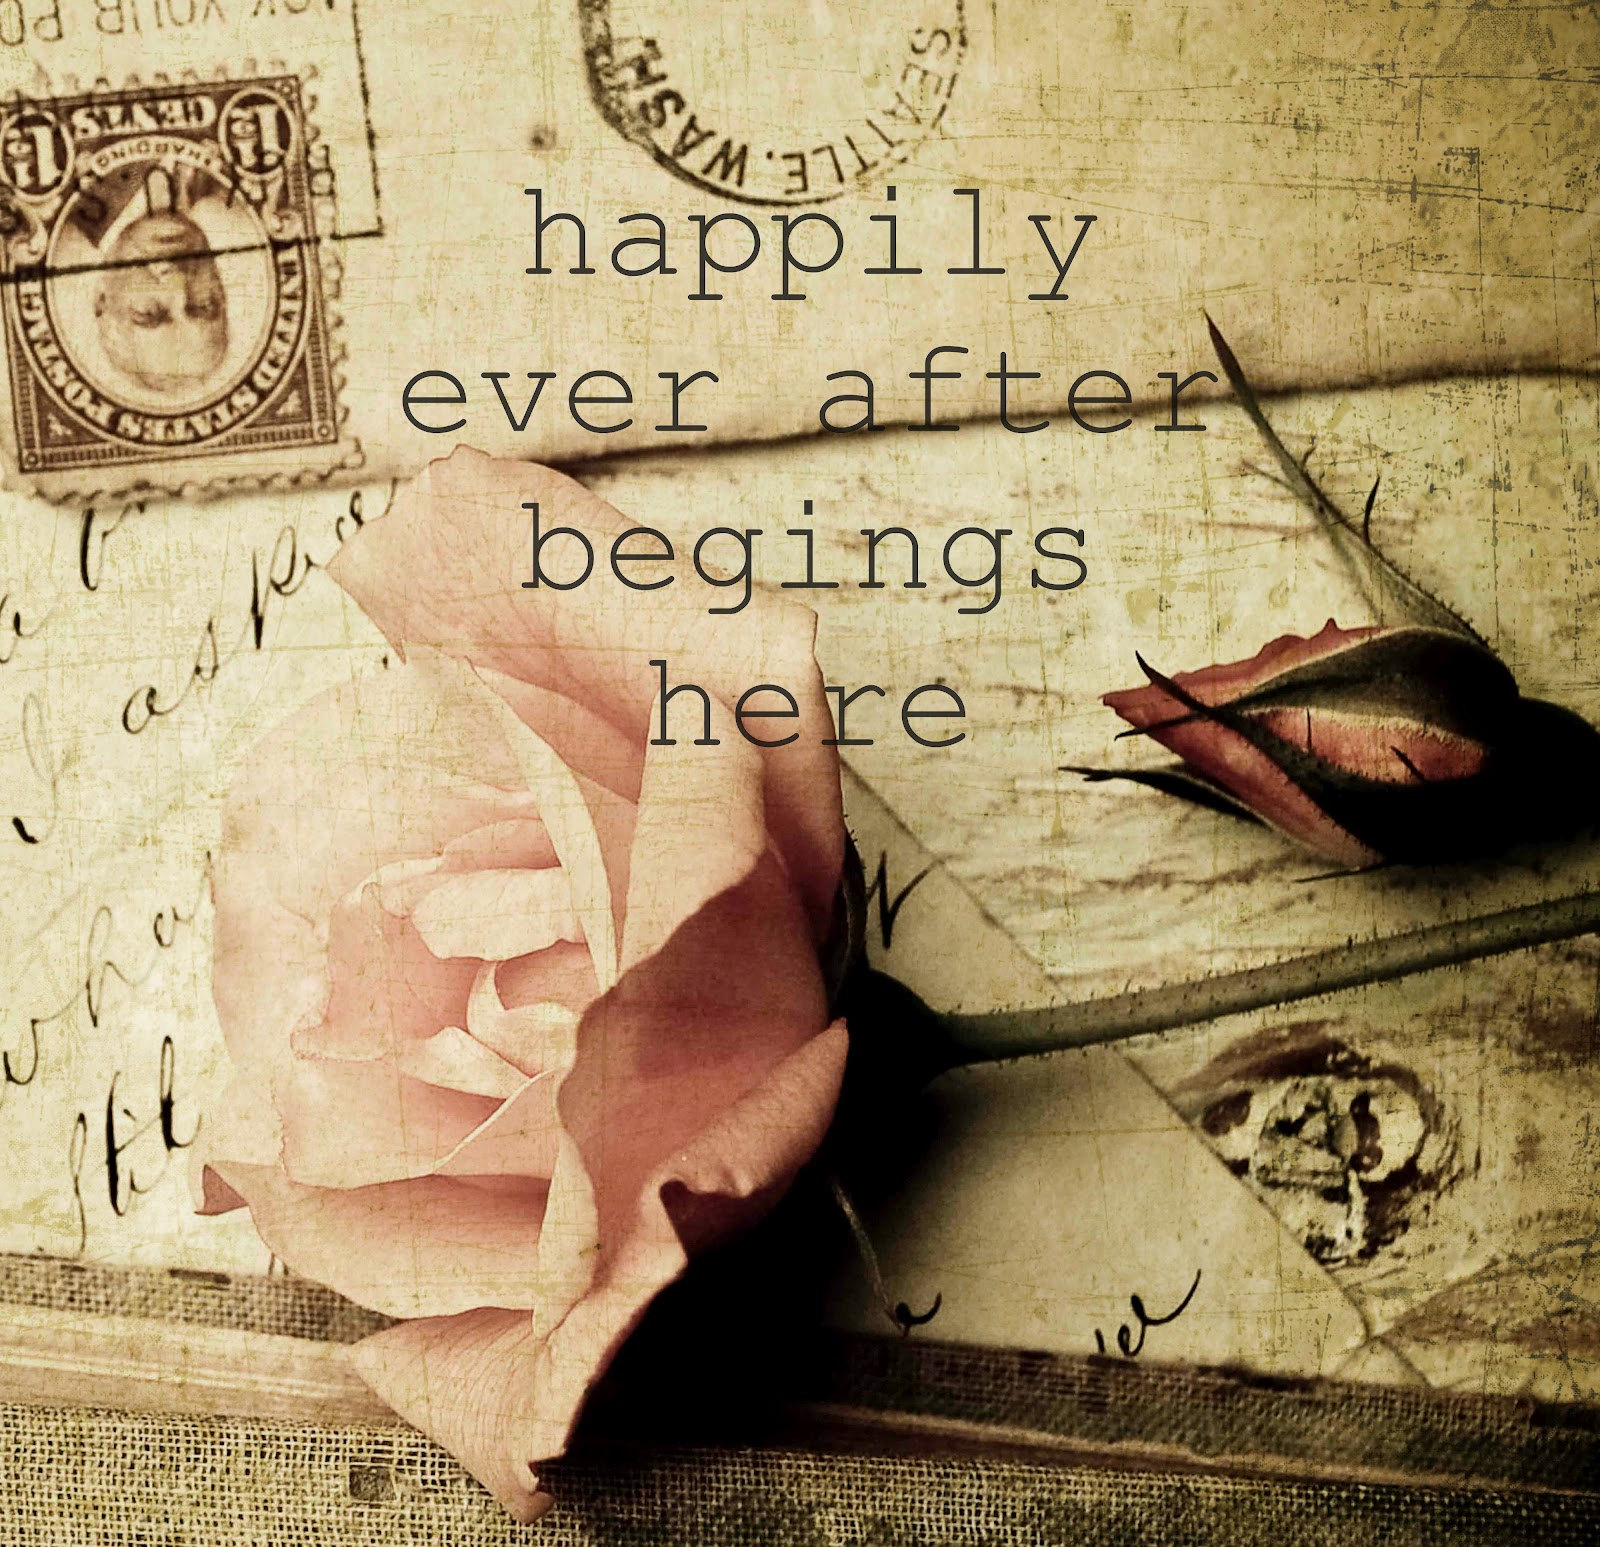 Vintage Photography Love QuotesVintage Photography Love Quotes